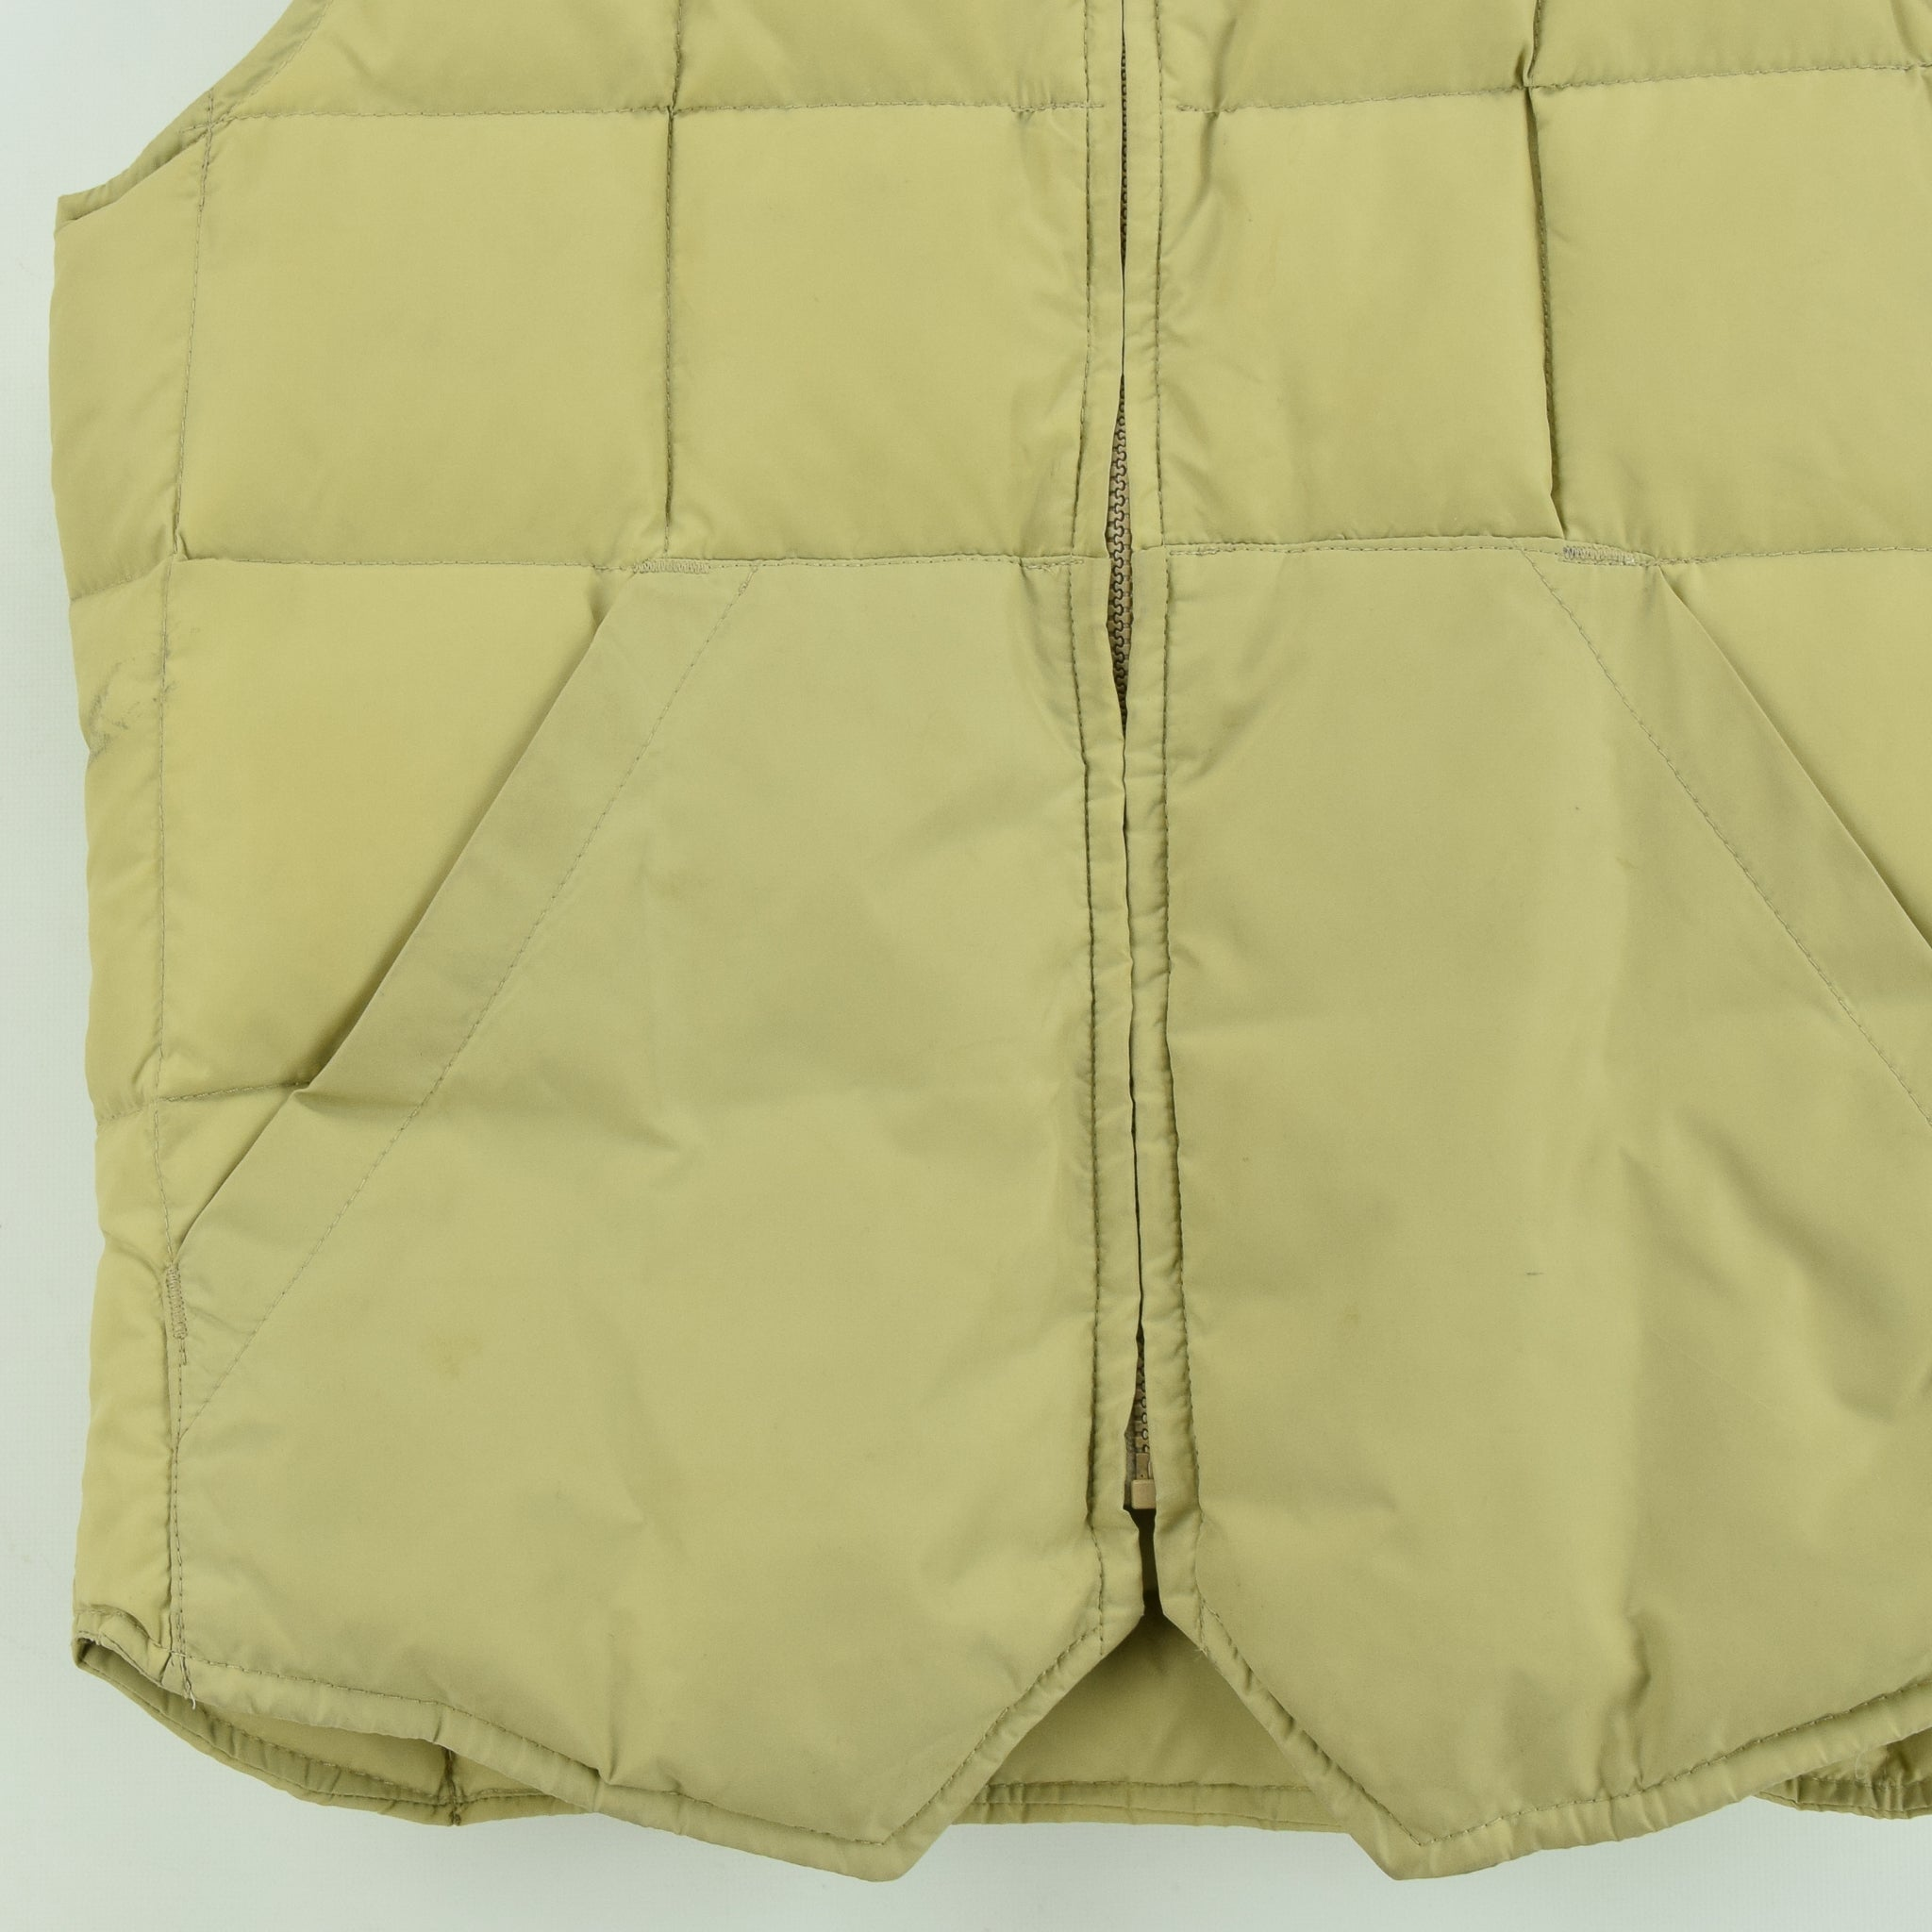 Vintage Eddie Bauer Quilted Gilet Goose Down Bodywarmer Made in Canada S front hem